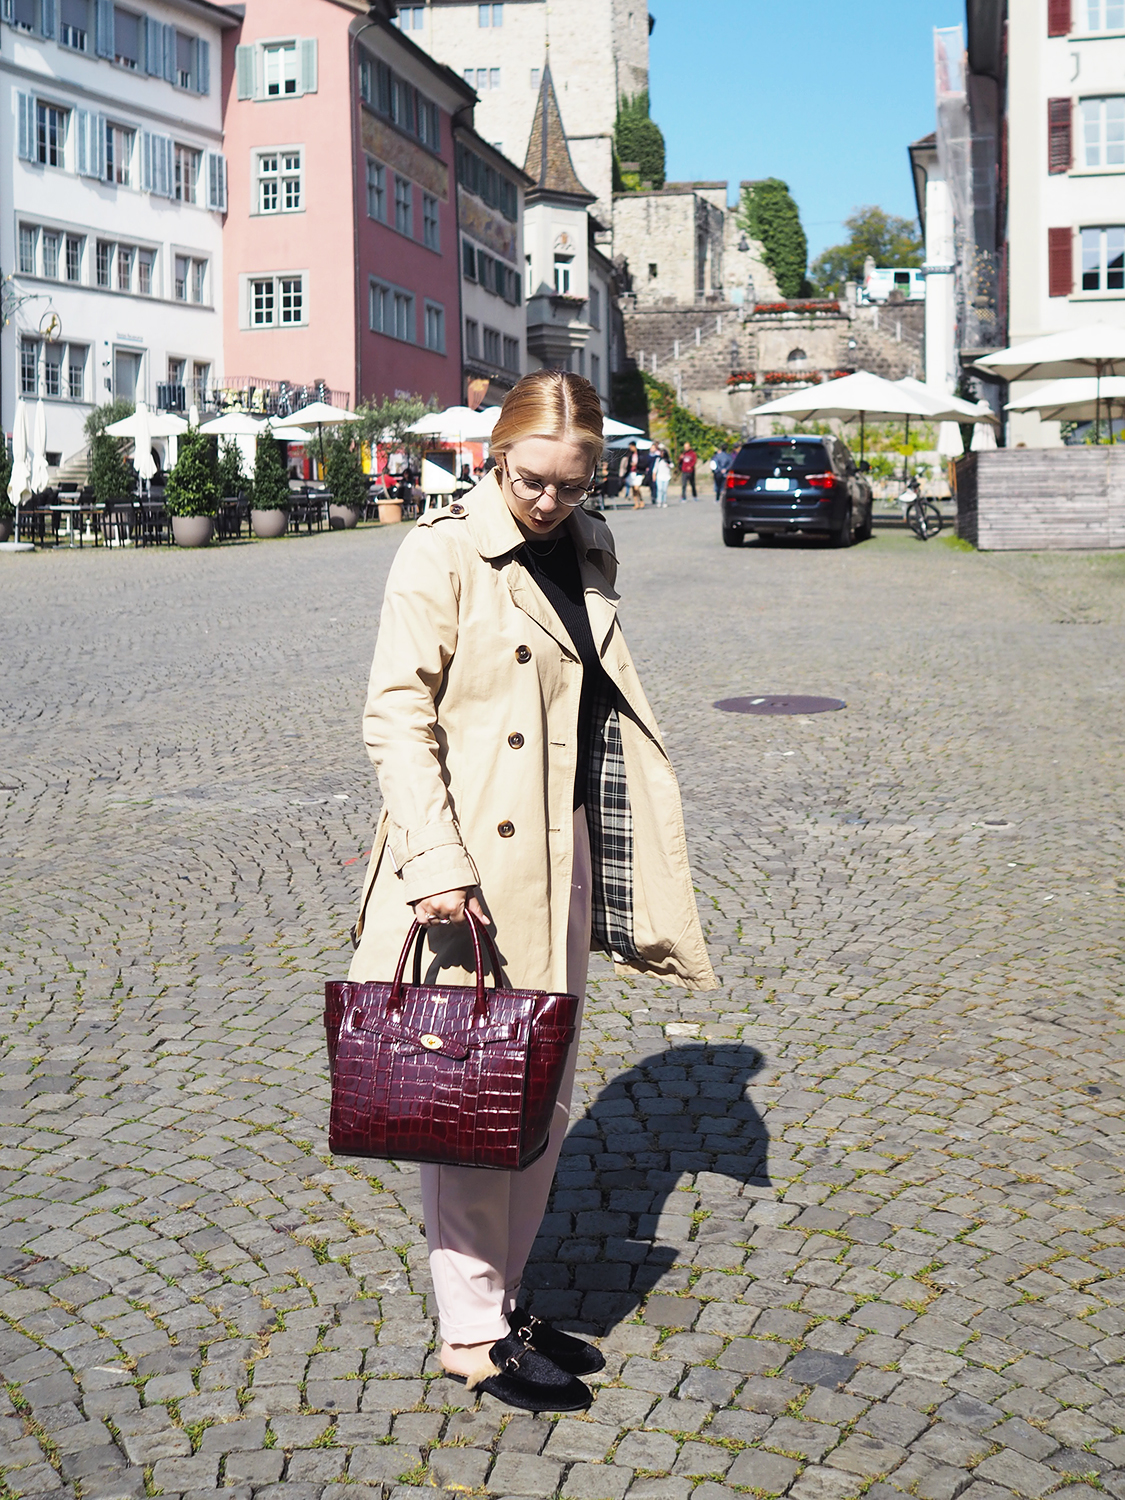 bde59abfe8 Let s see what s in my Mulberry bag